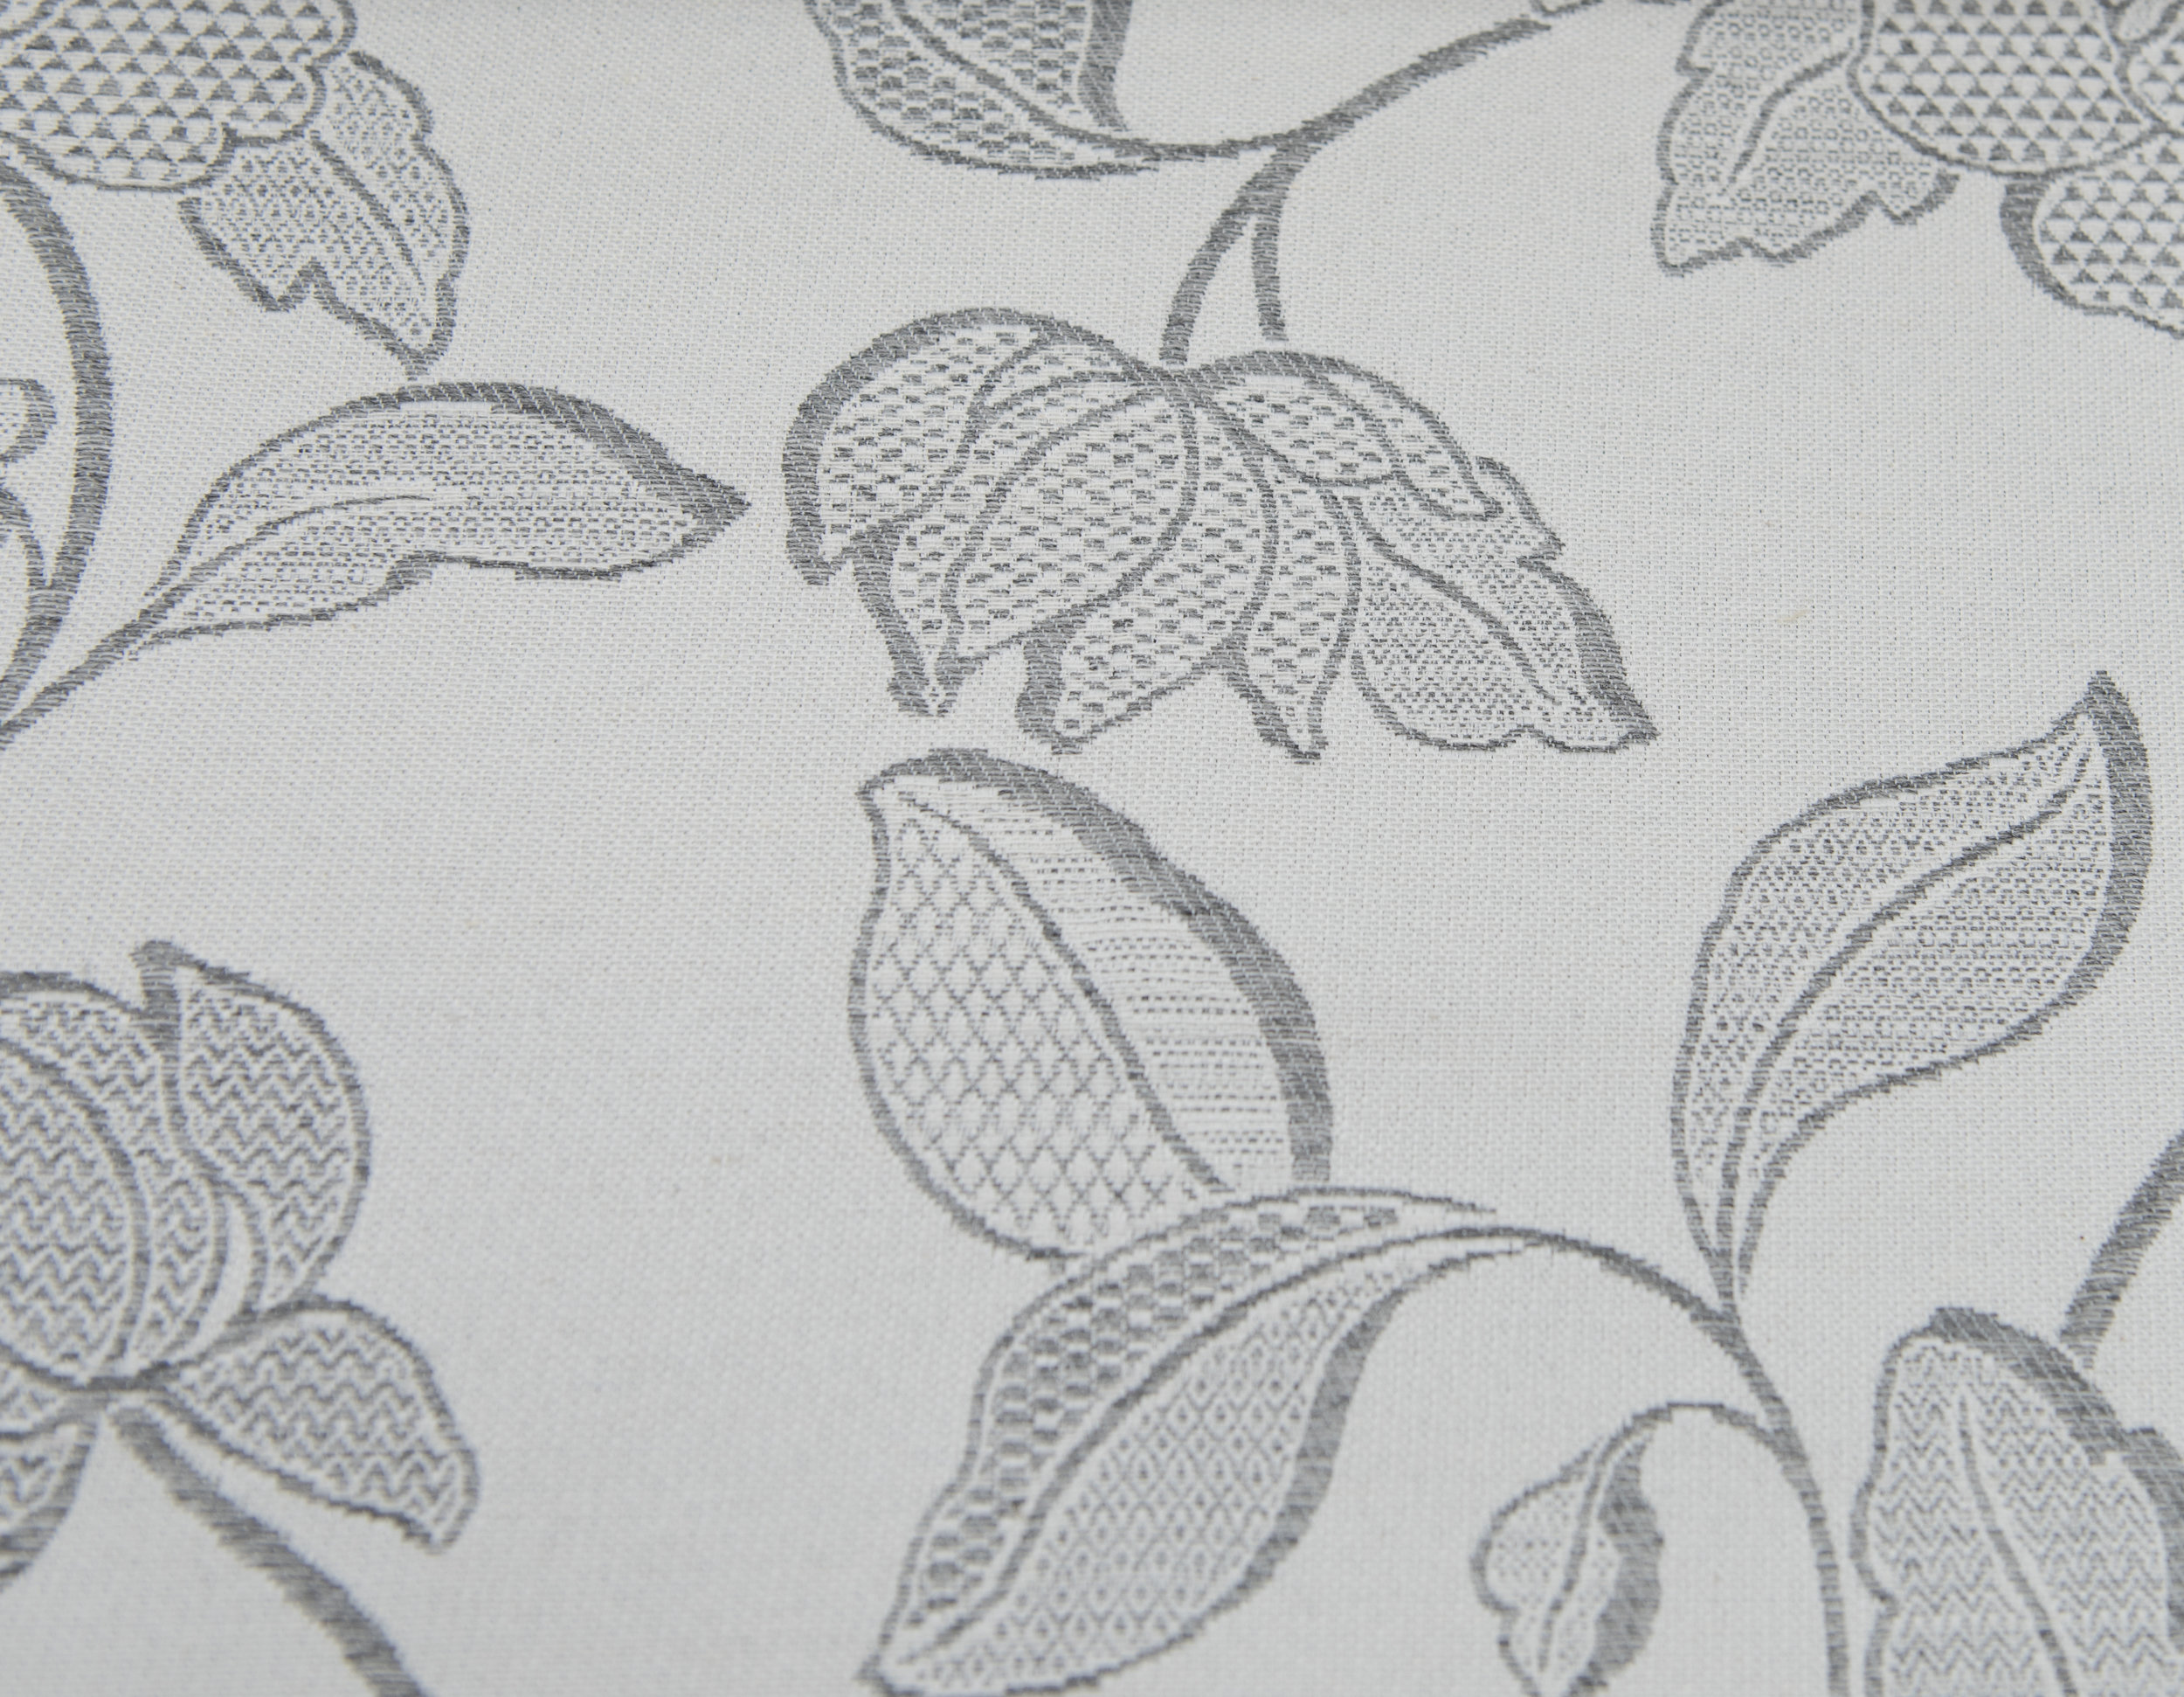 """GLAMOUR  #4/SILVER 60%COTTON/40% POLY  108"""" WIDE WASHABLE  MADE IN ITALY  TABLECLOTH,BED COVER, CURTAIN ,UPHOLSTERY"""